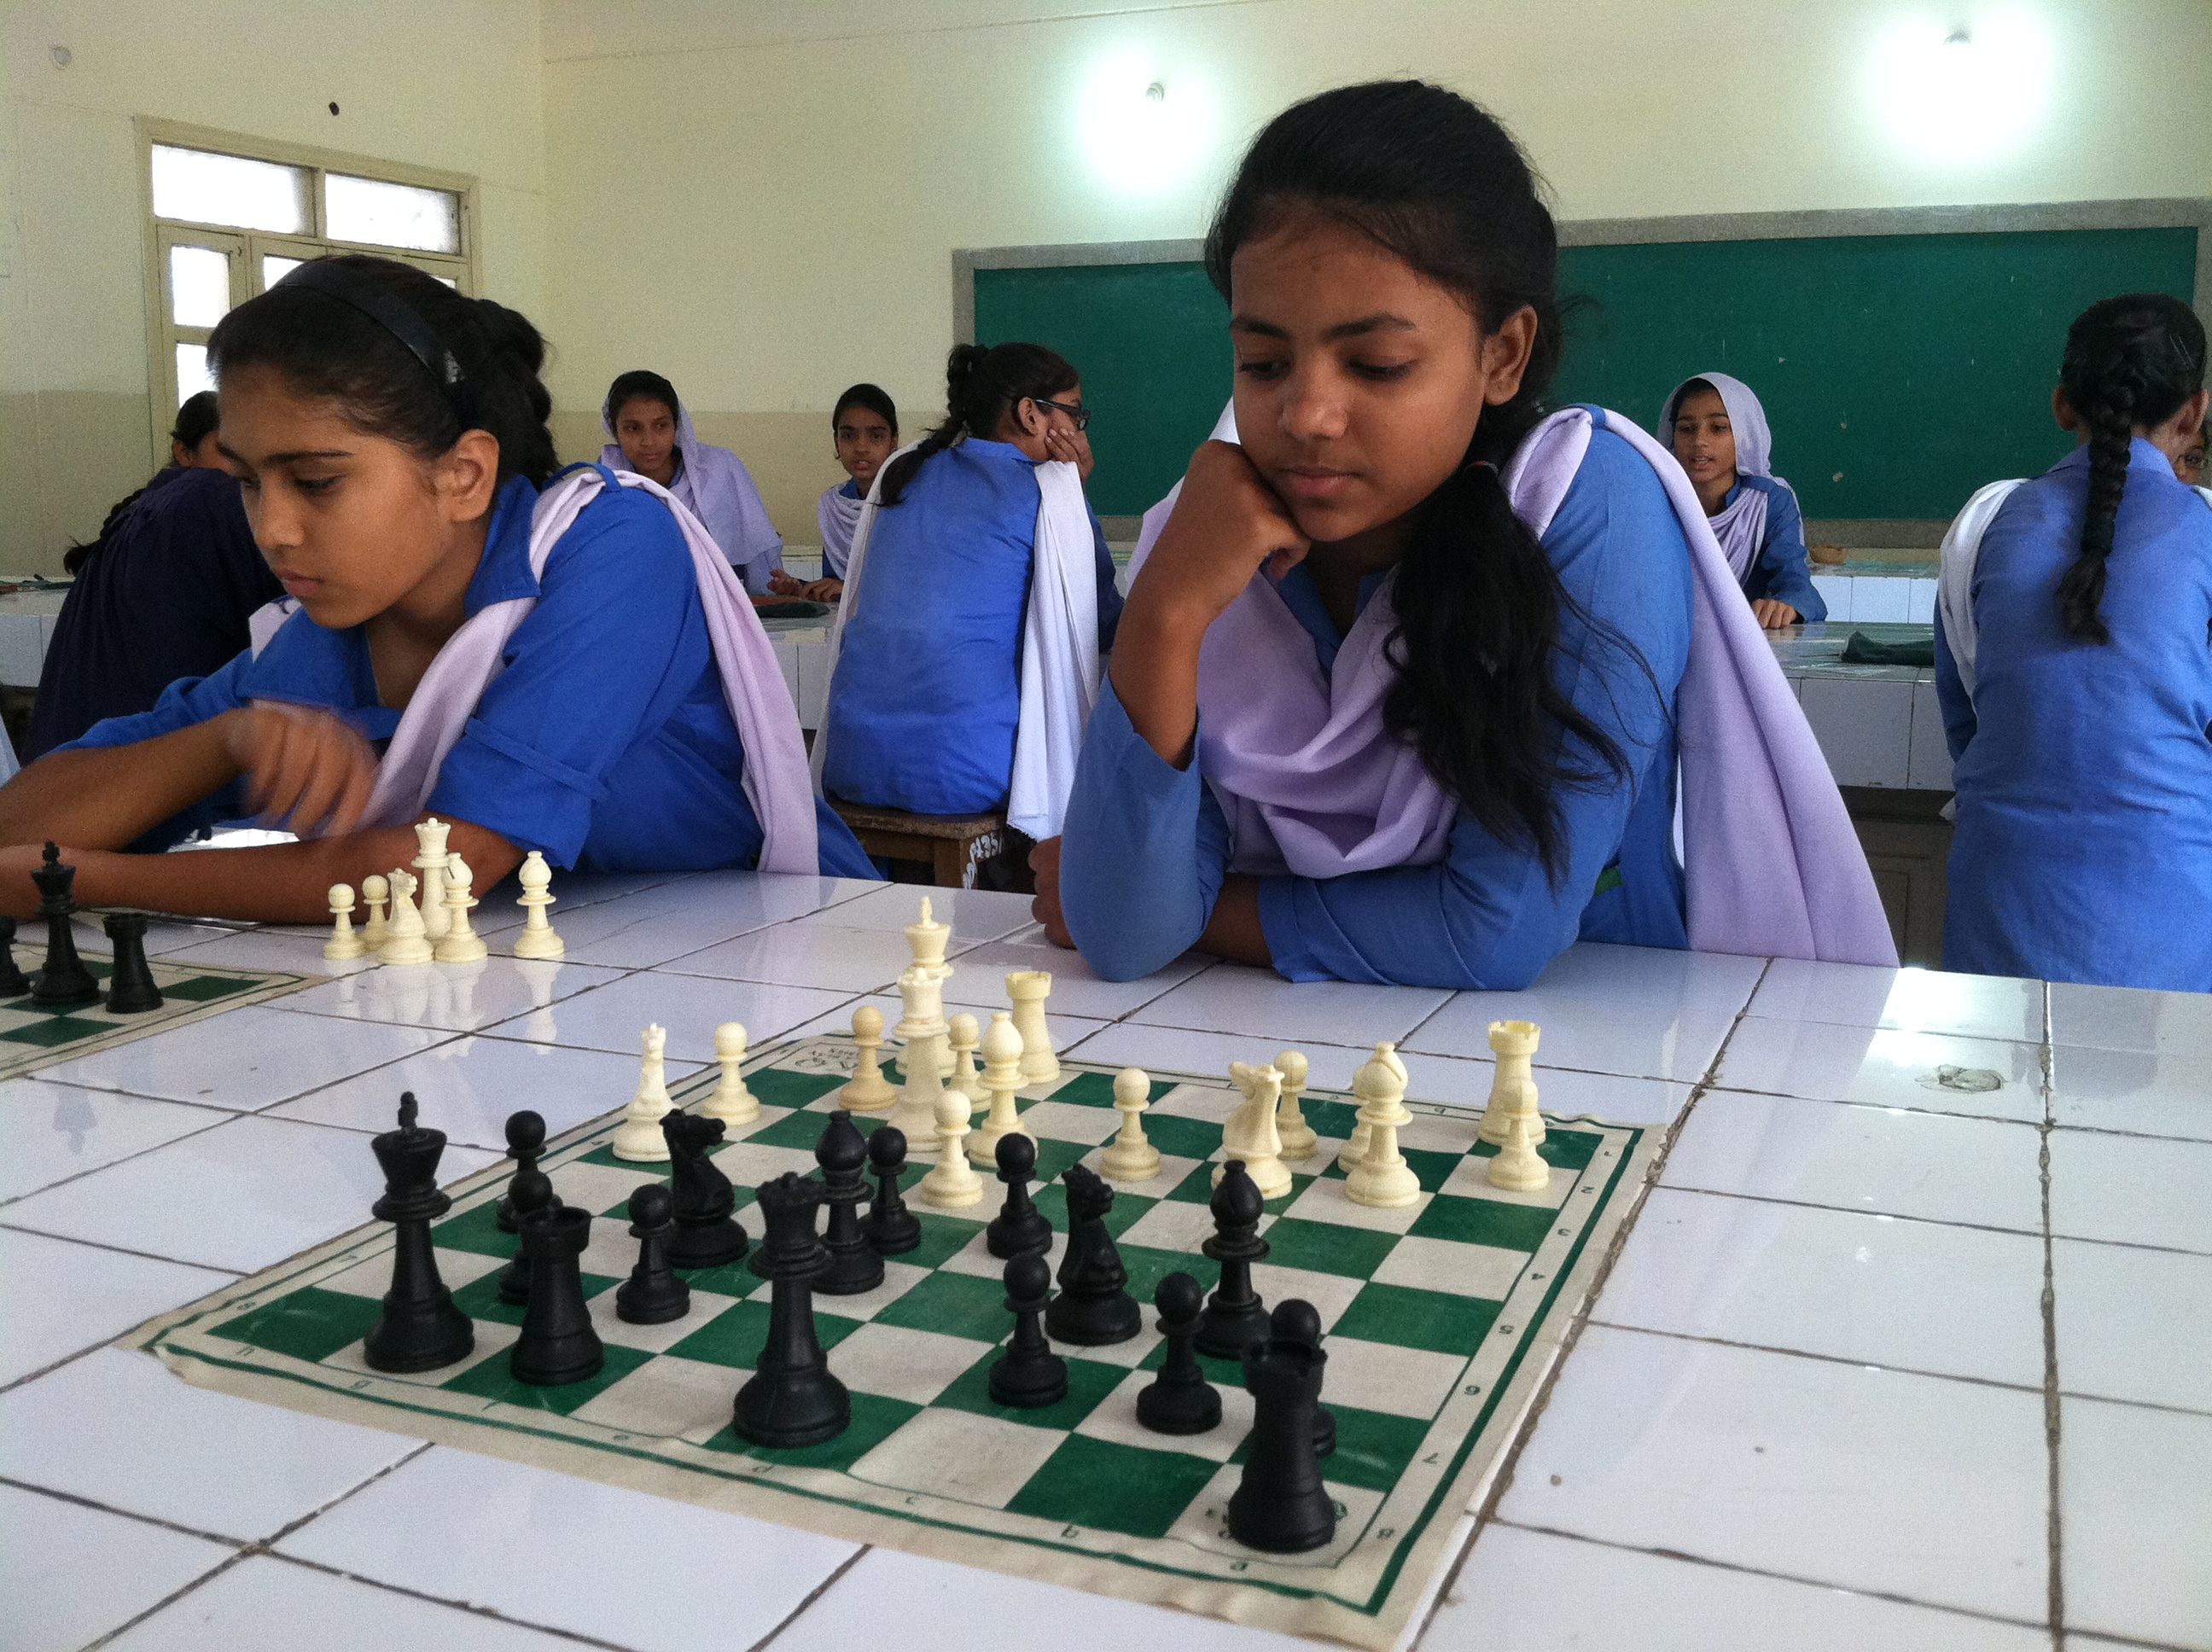 Girls study and compete in chess, just one of several extracurricular activities added to this girls' public school since the Zindagi Trust adopted it in 2007.